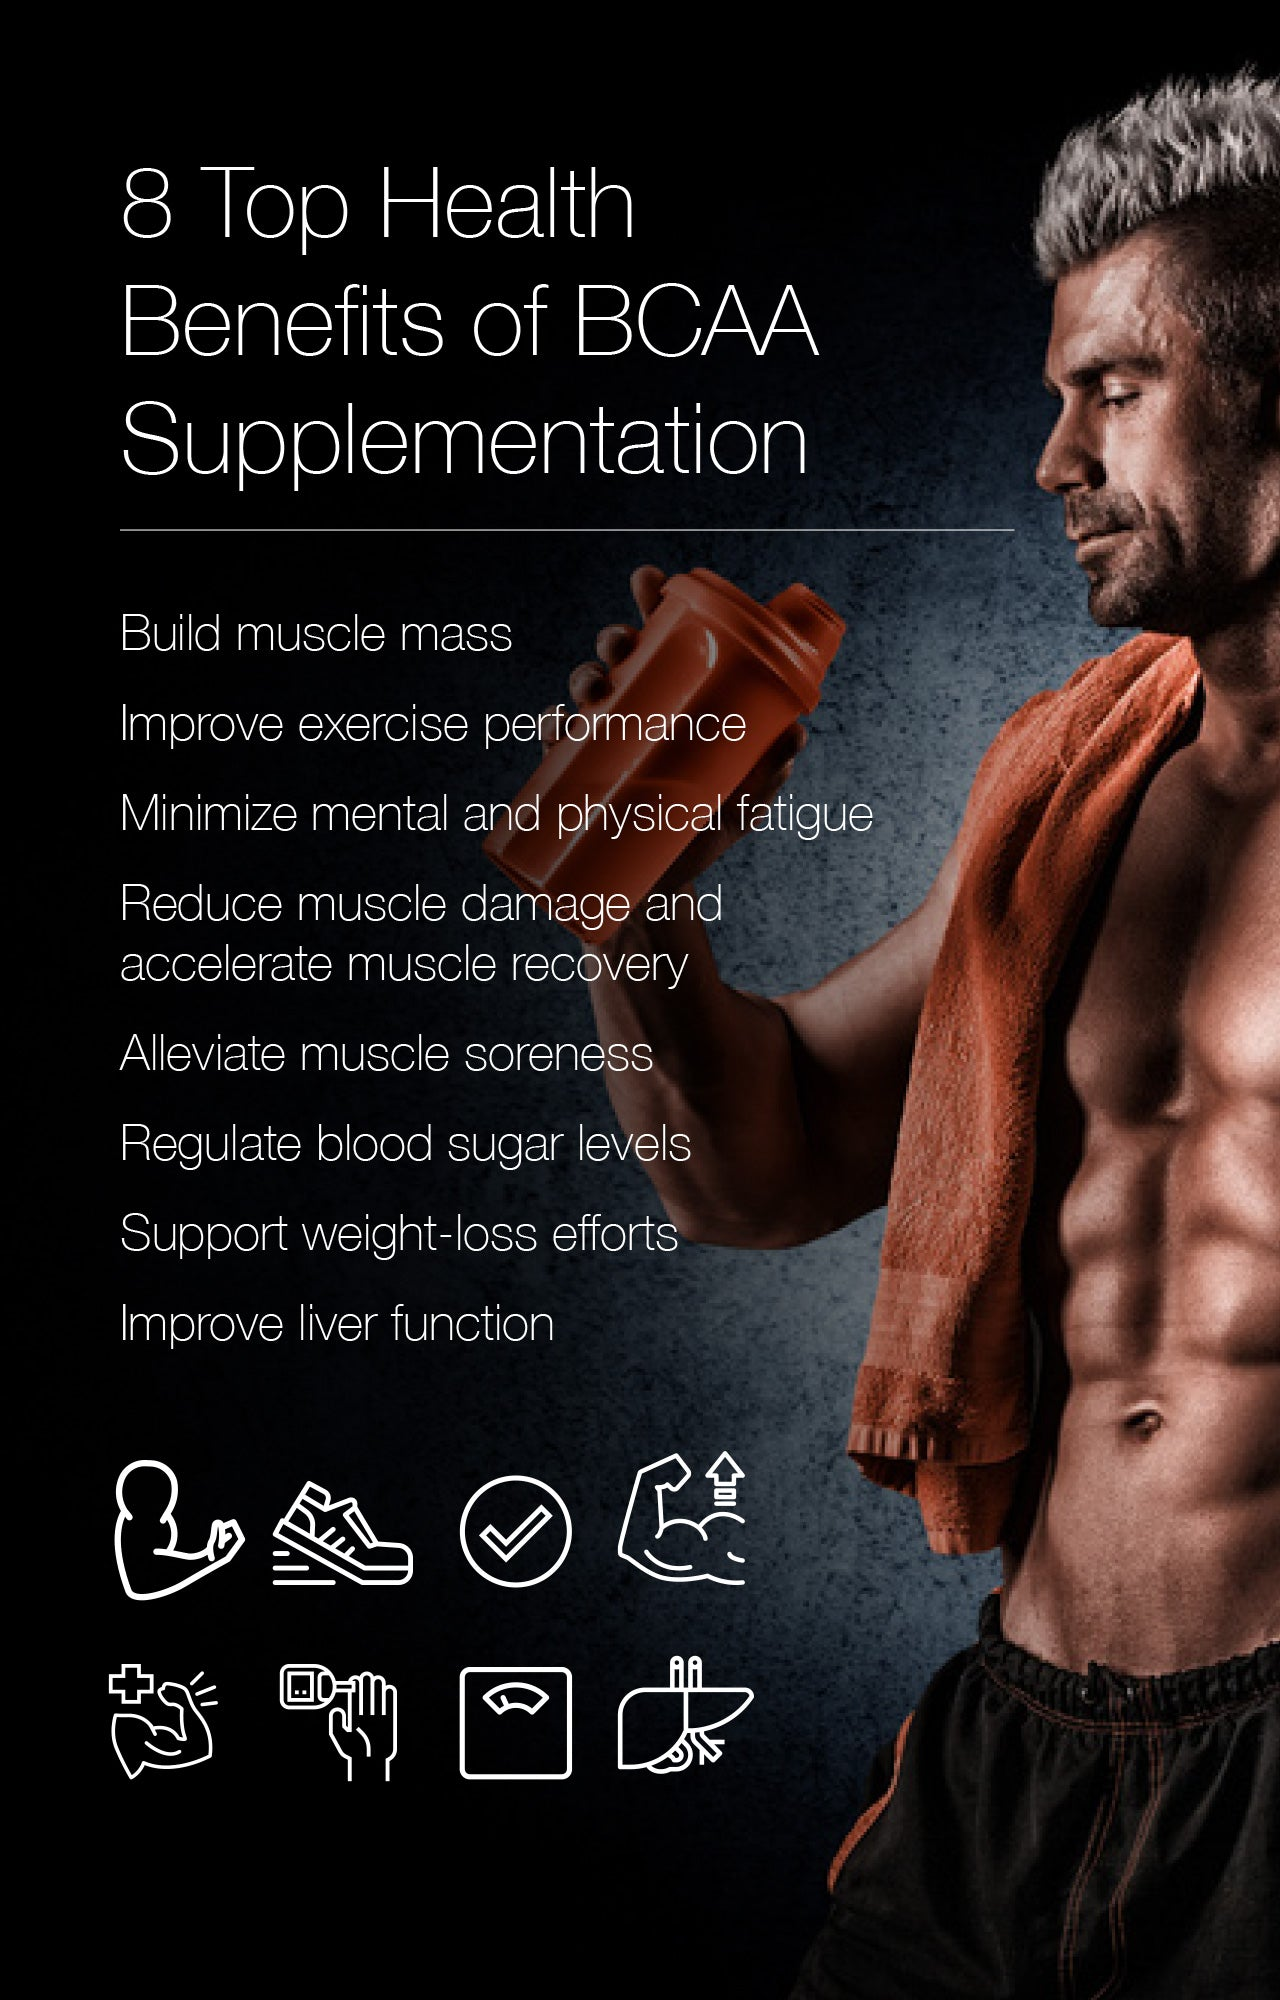 8 Top Health Benefits of BCAA Supplementation